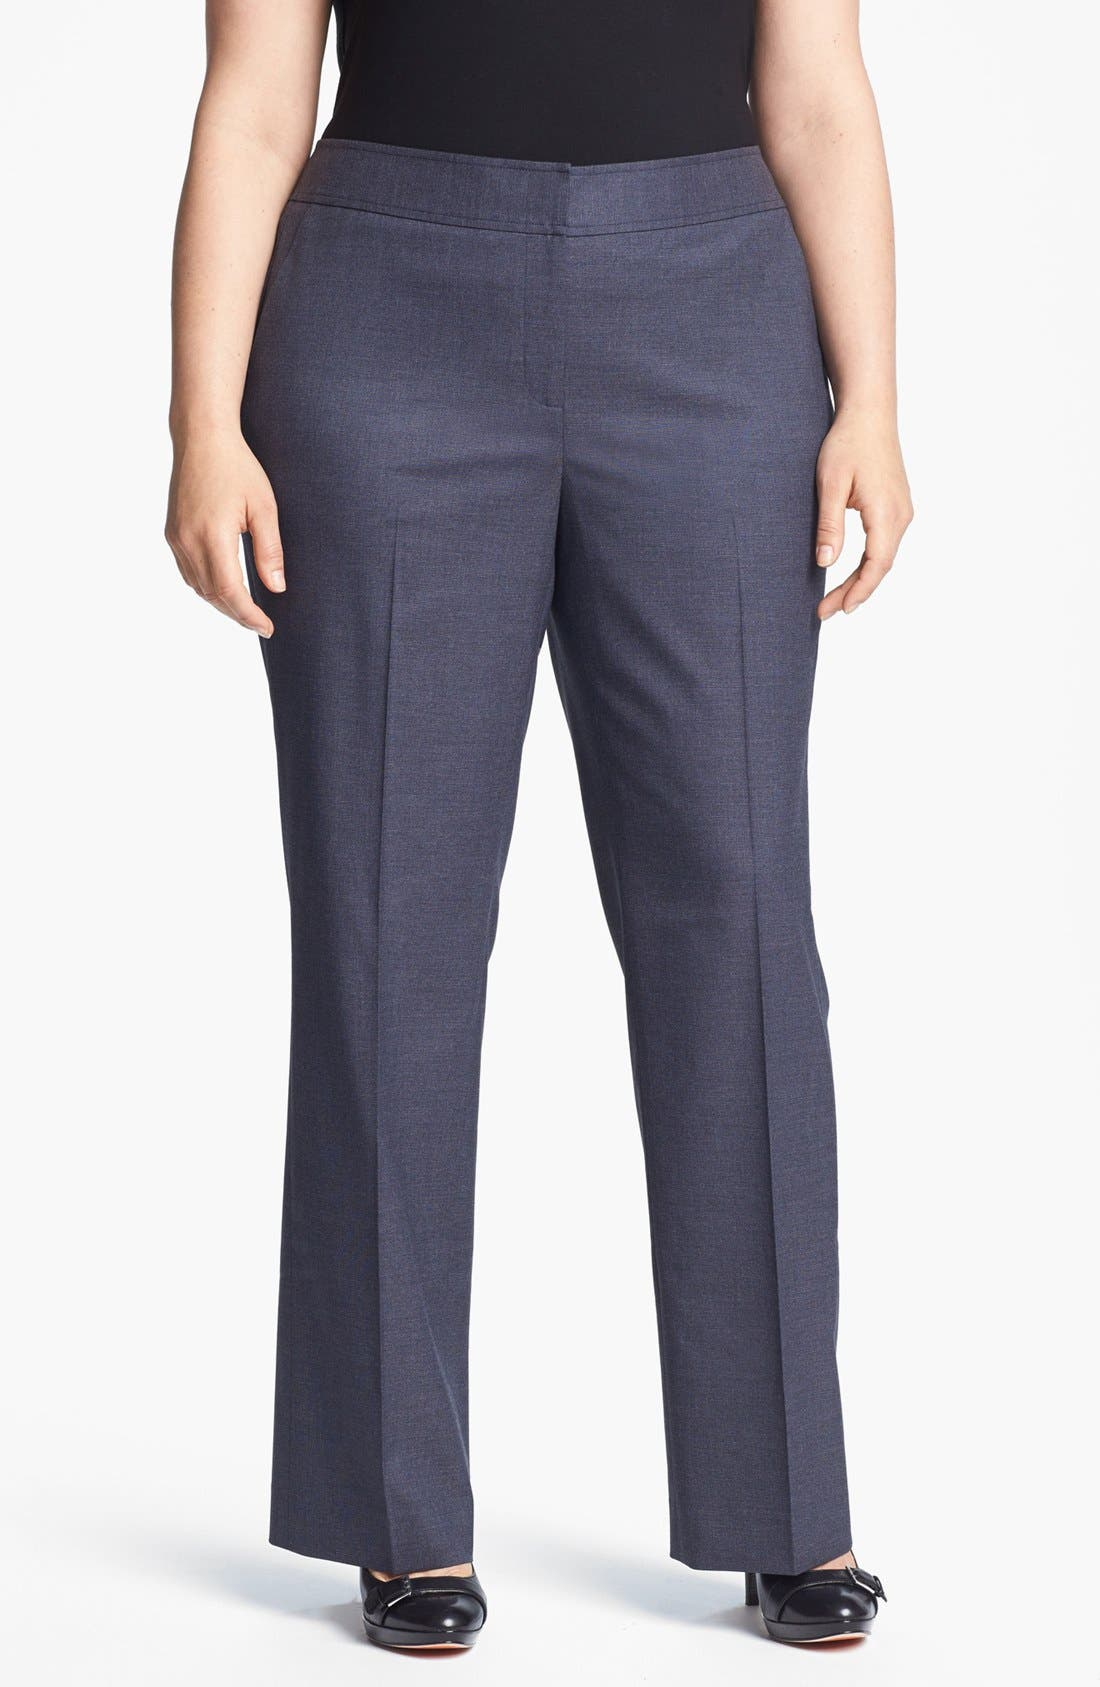 Alternate Image 1 Selected - Sejour 'Gilda' Curvy Fit Trouser (Plus Size)